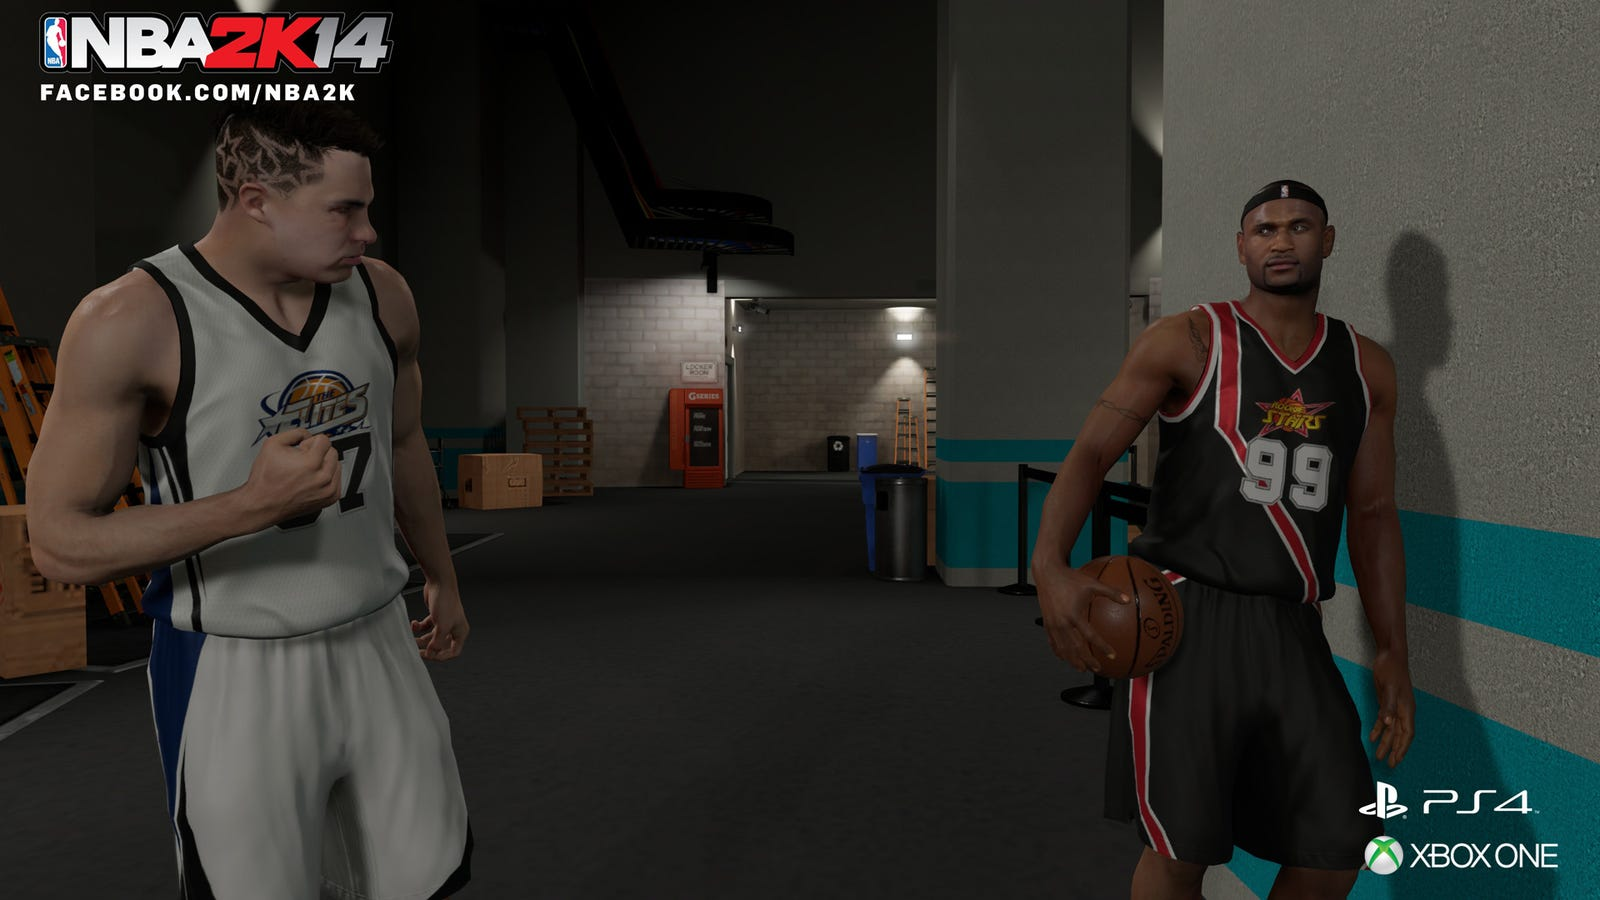 NBA 2K14 Keeps Crashing, but 2K Sports Says It Knows What's